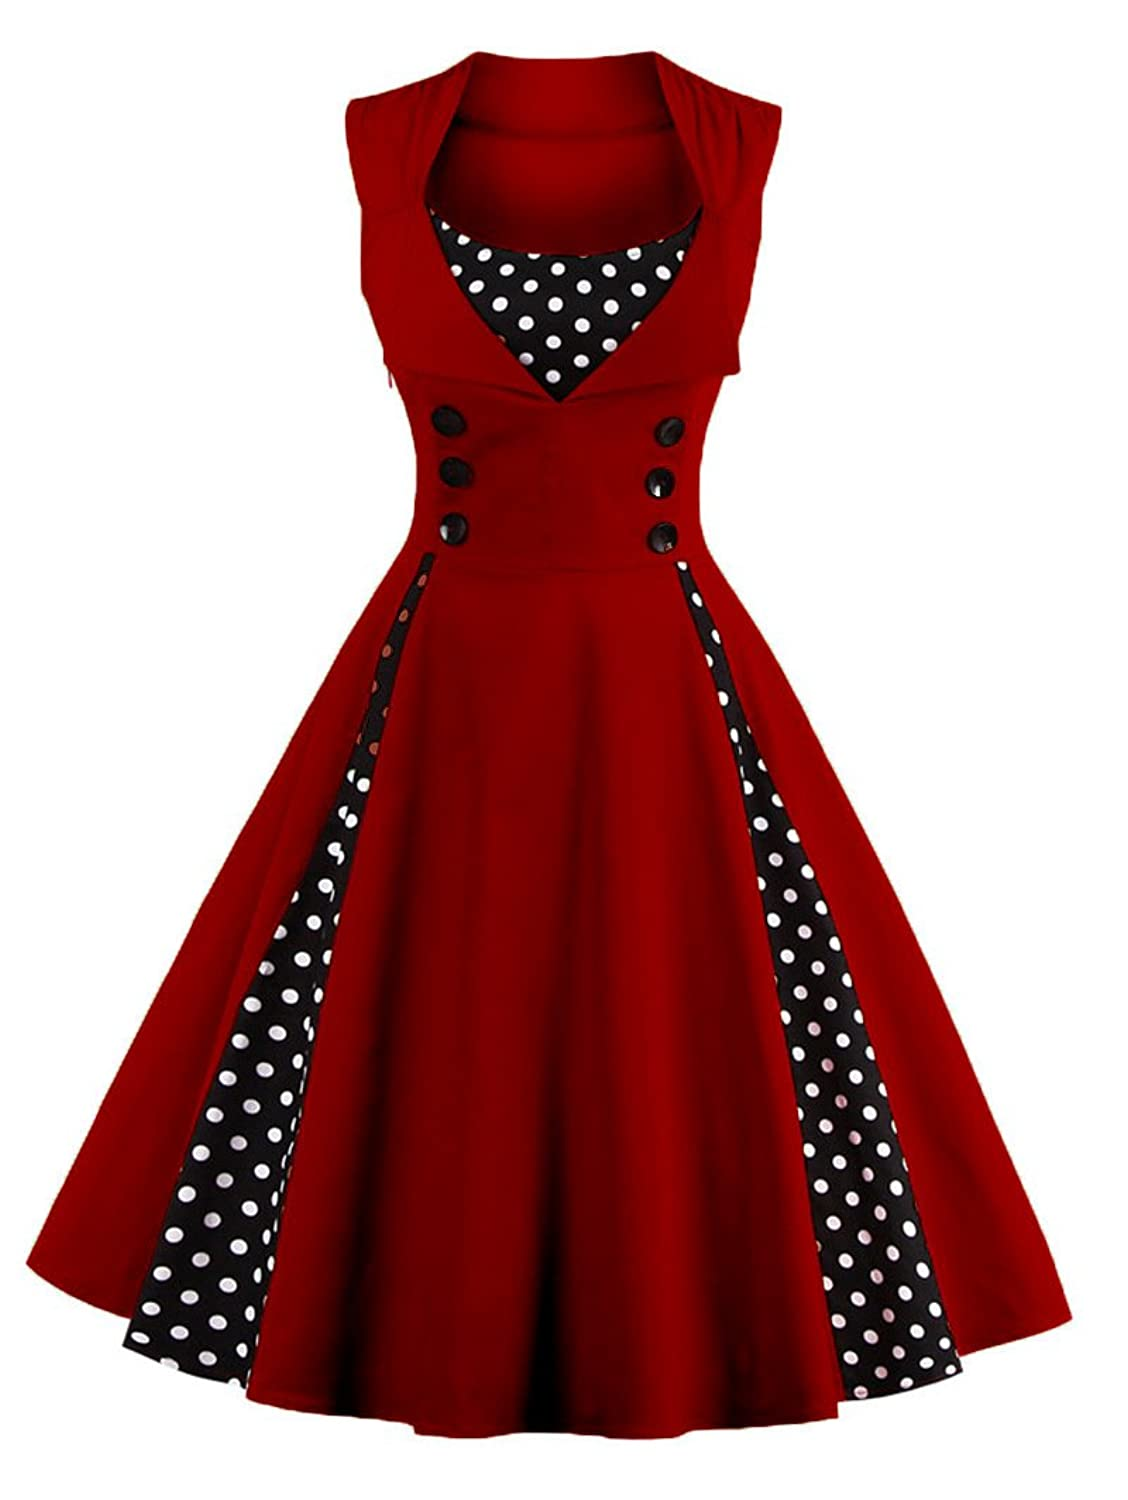 1950s Swing Dresses | 50s Swing Dress LUNAJANY Womens Rockabilly Vintage Polka Dot Pin up Swing Cocktail Party Dress $24.59 AT vintagedancer.com